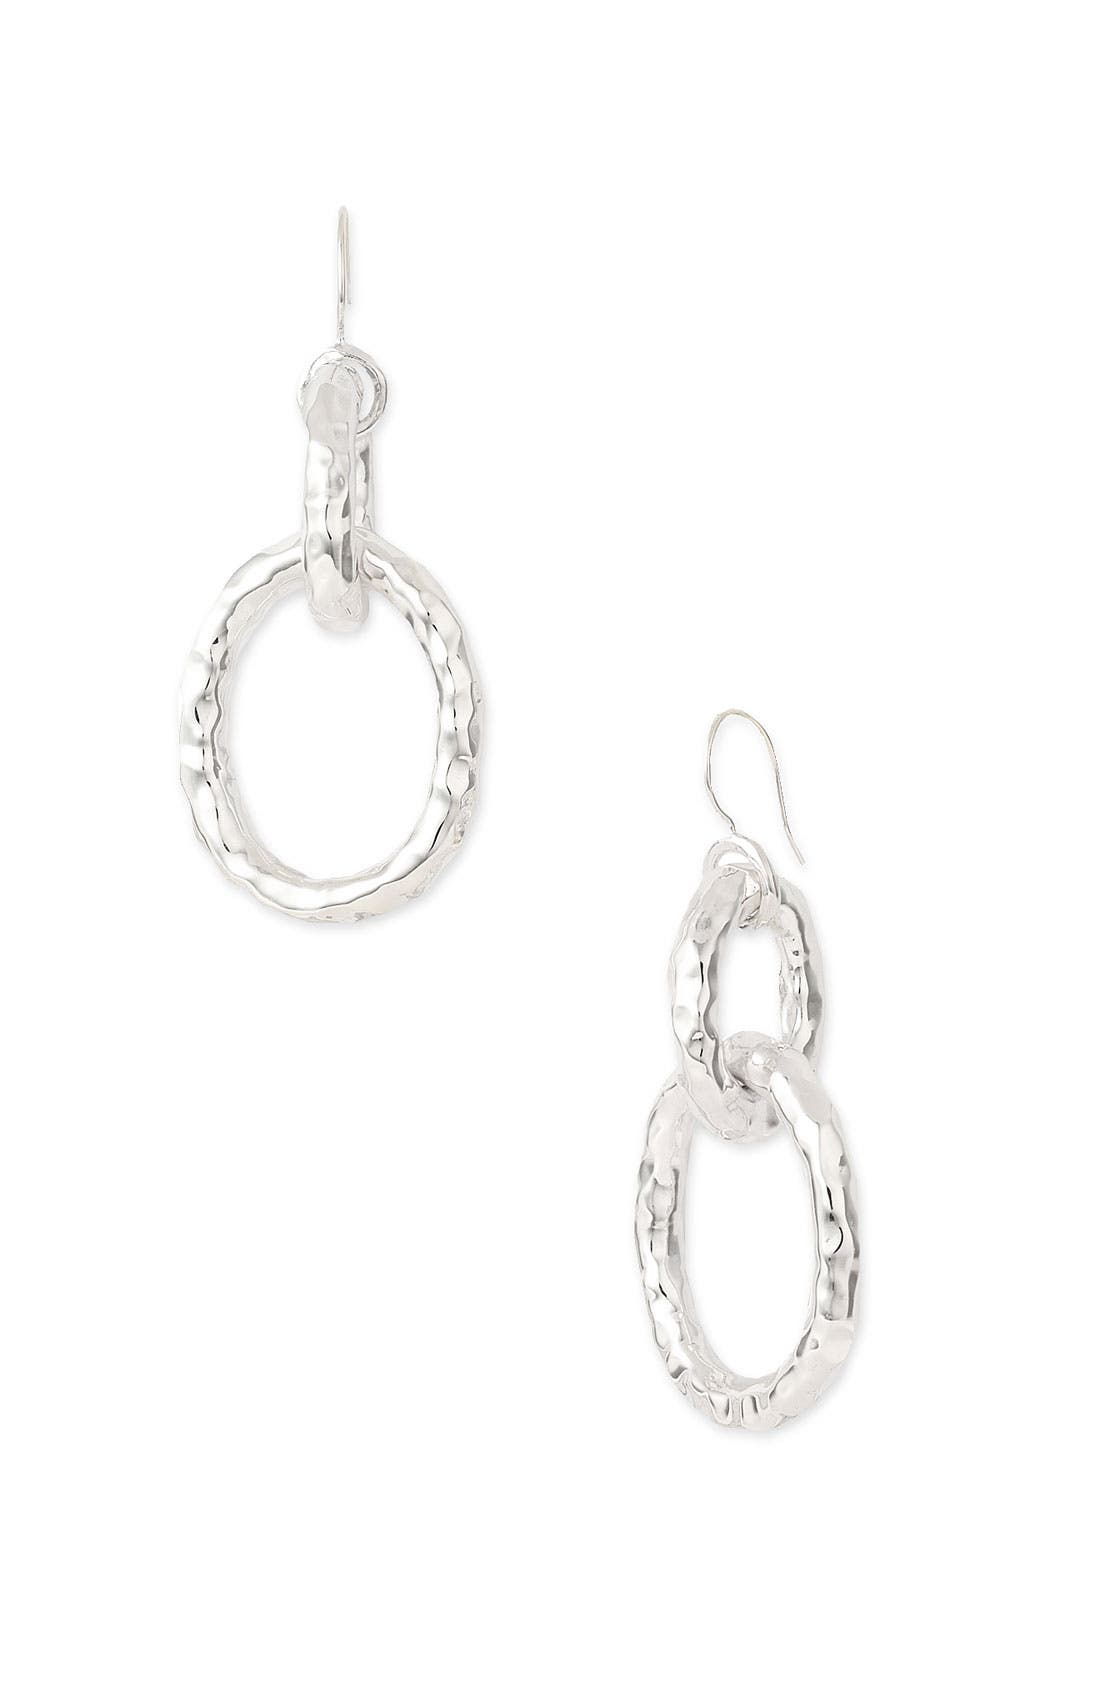 Alternate Image 1 Selected - Ippolita 'Glamazon' Hammered Chain Link Earrings